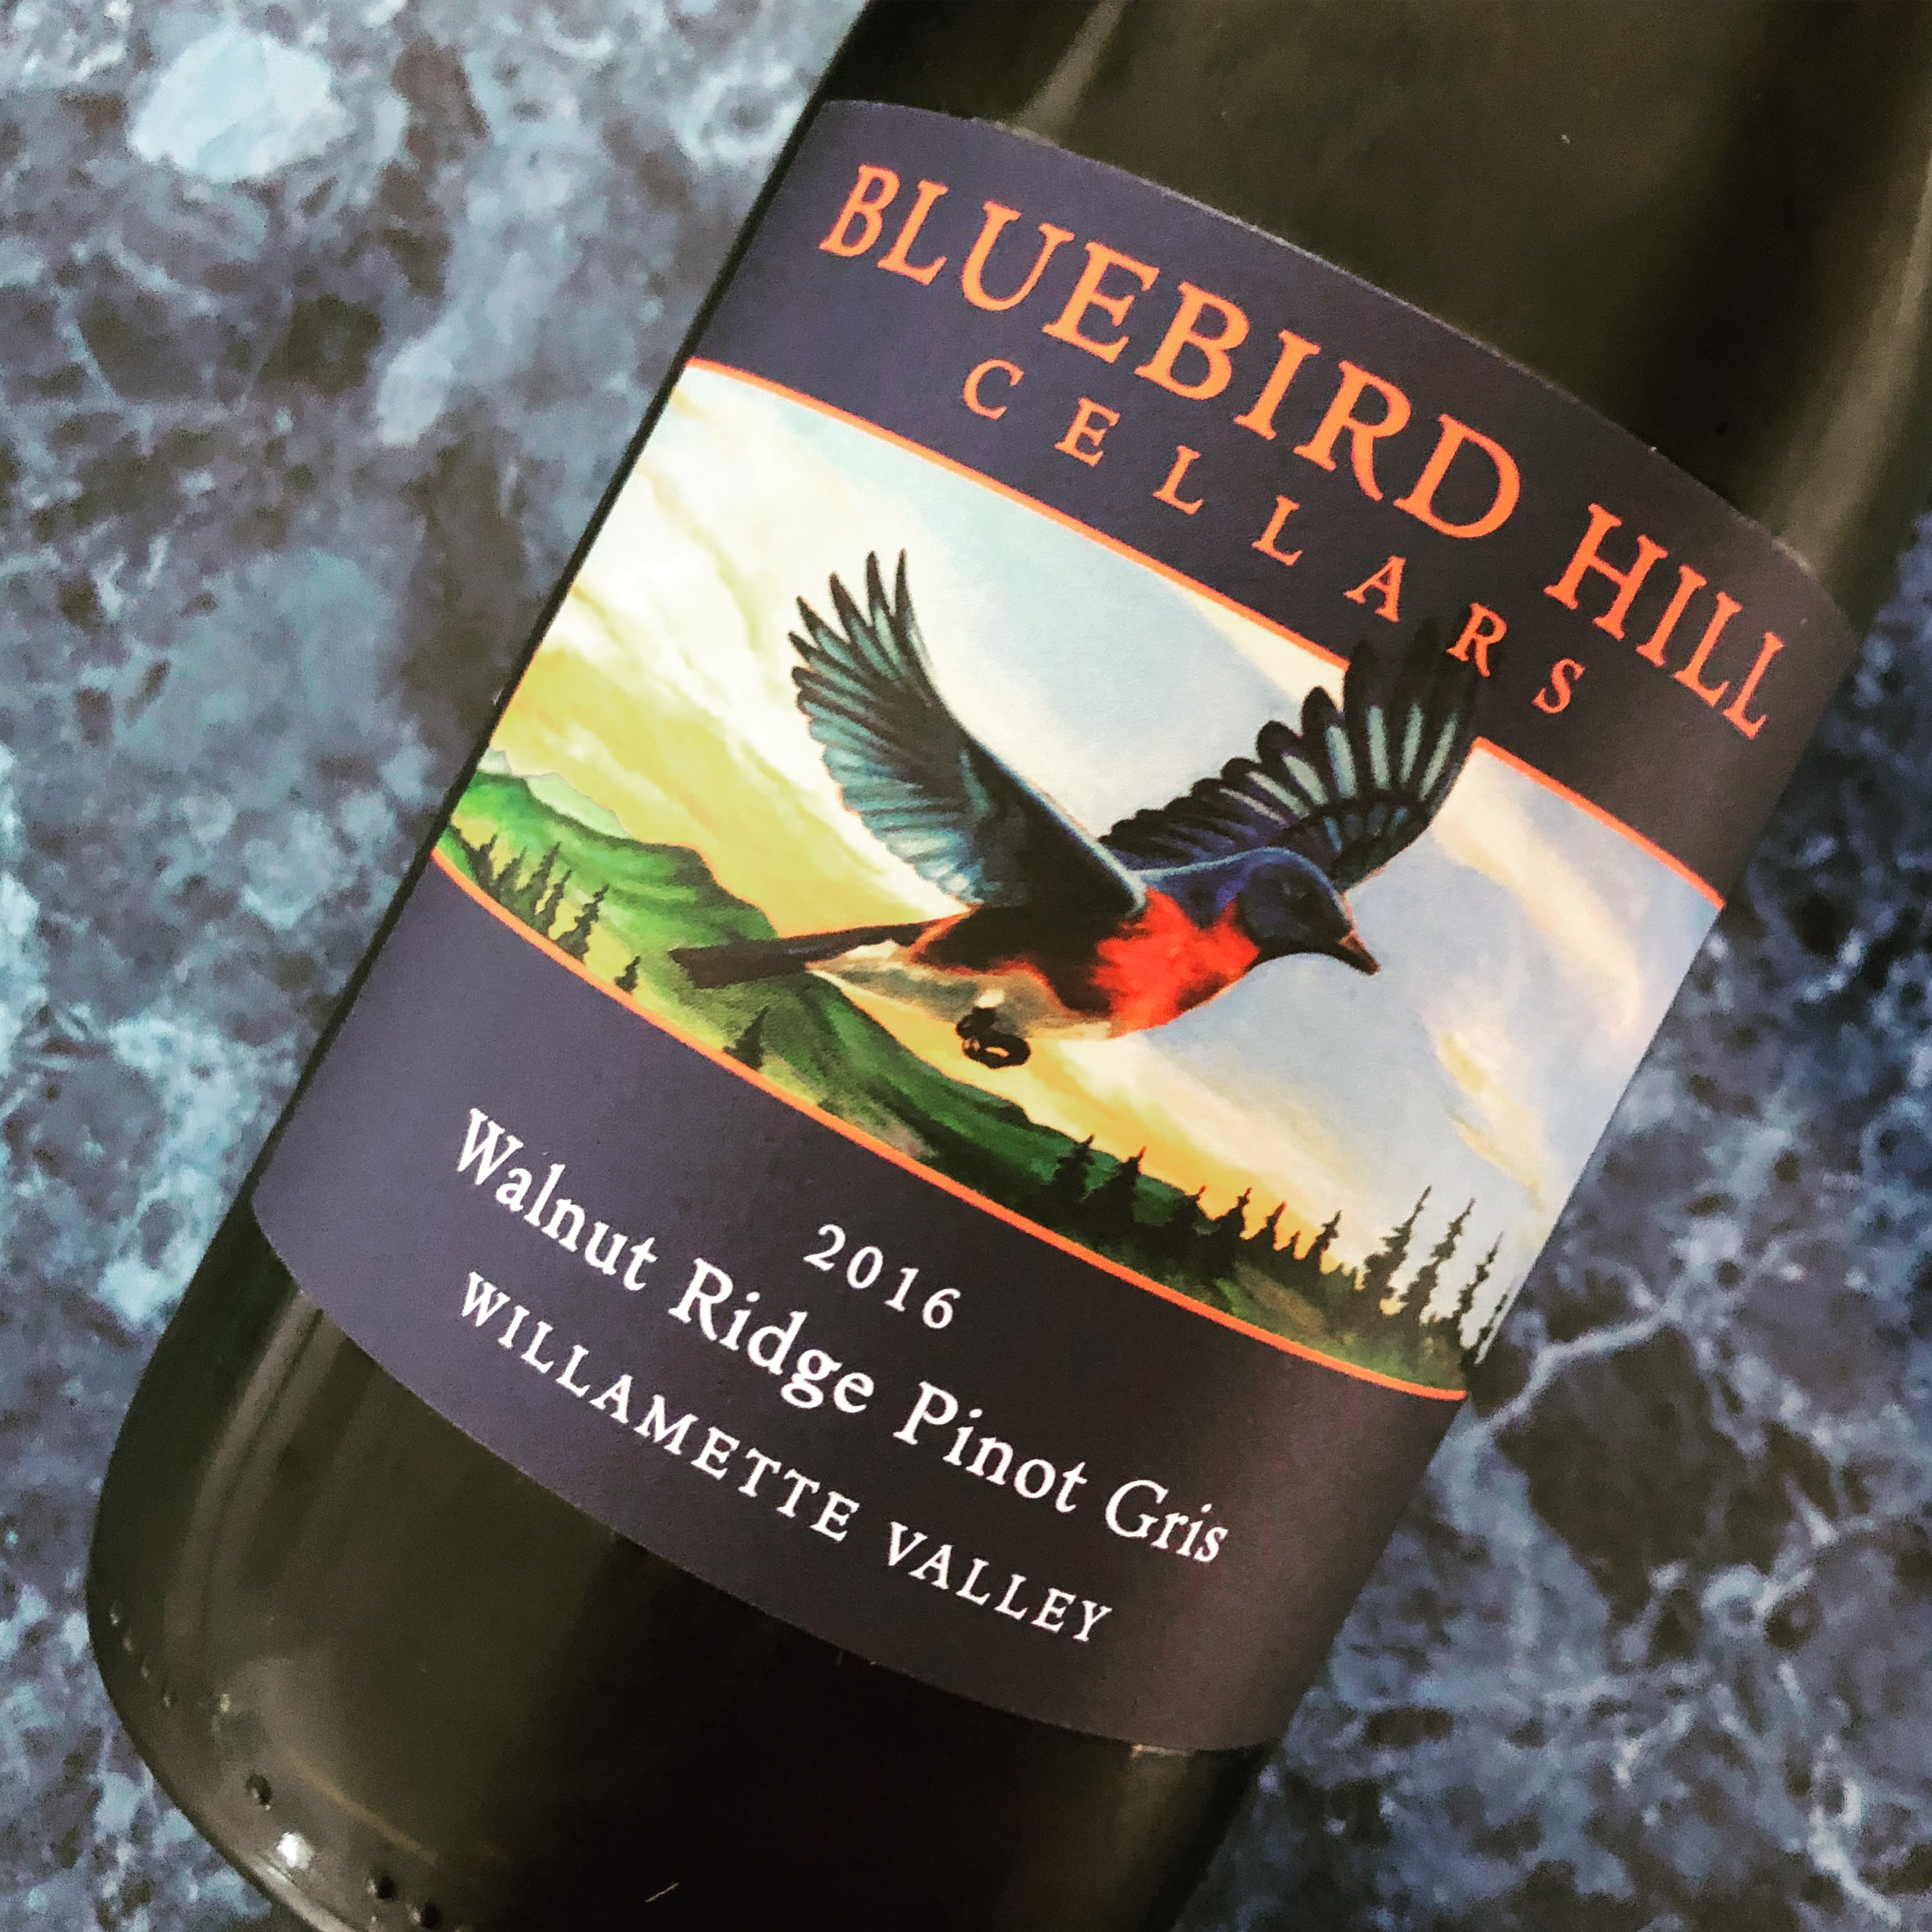 Walnut Ridge Pinot Gris 2016